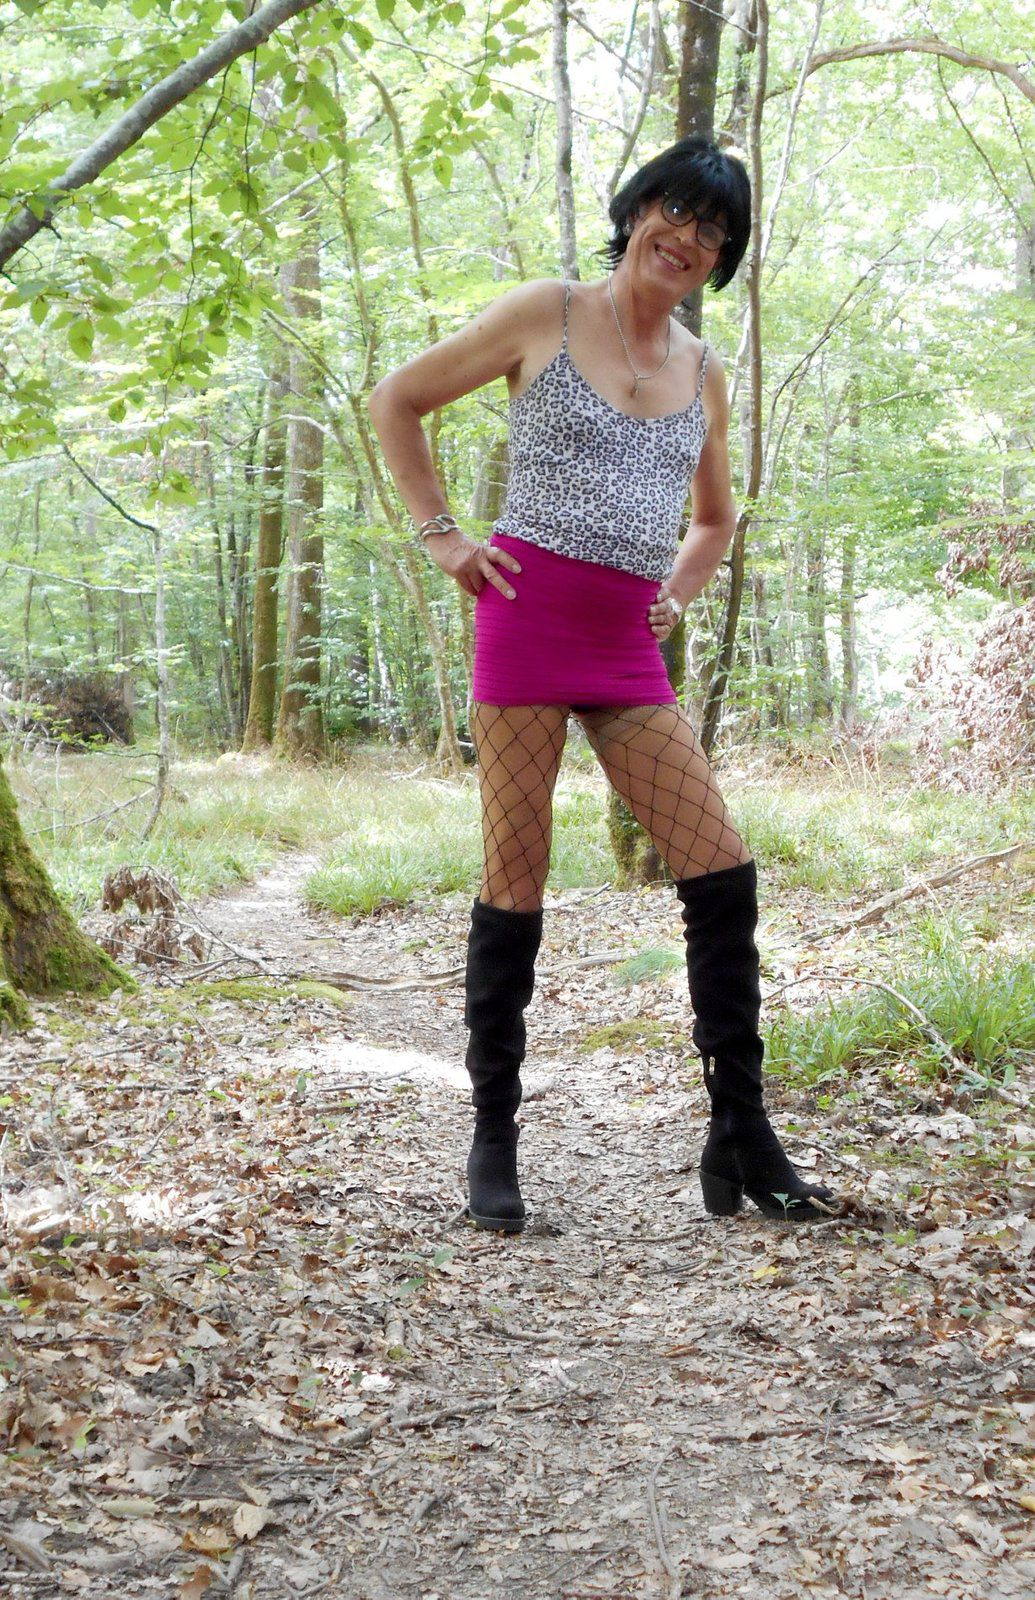 MYRYAM PUTE TRAVESTI DE NEVERS